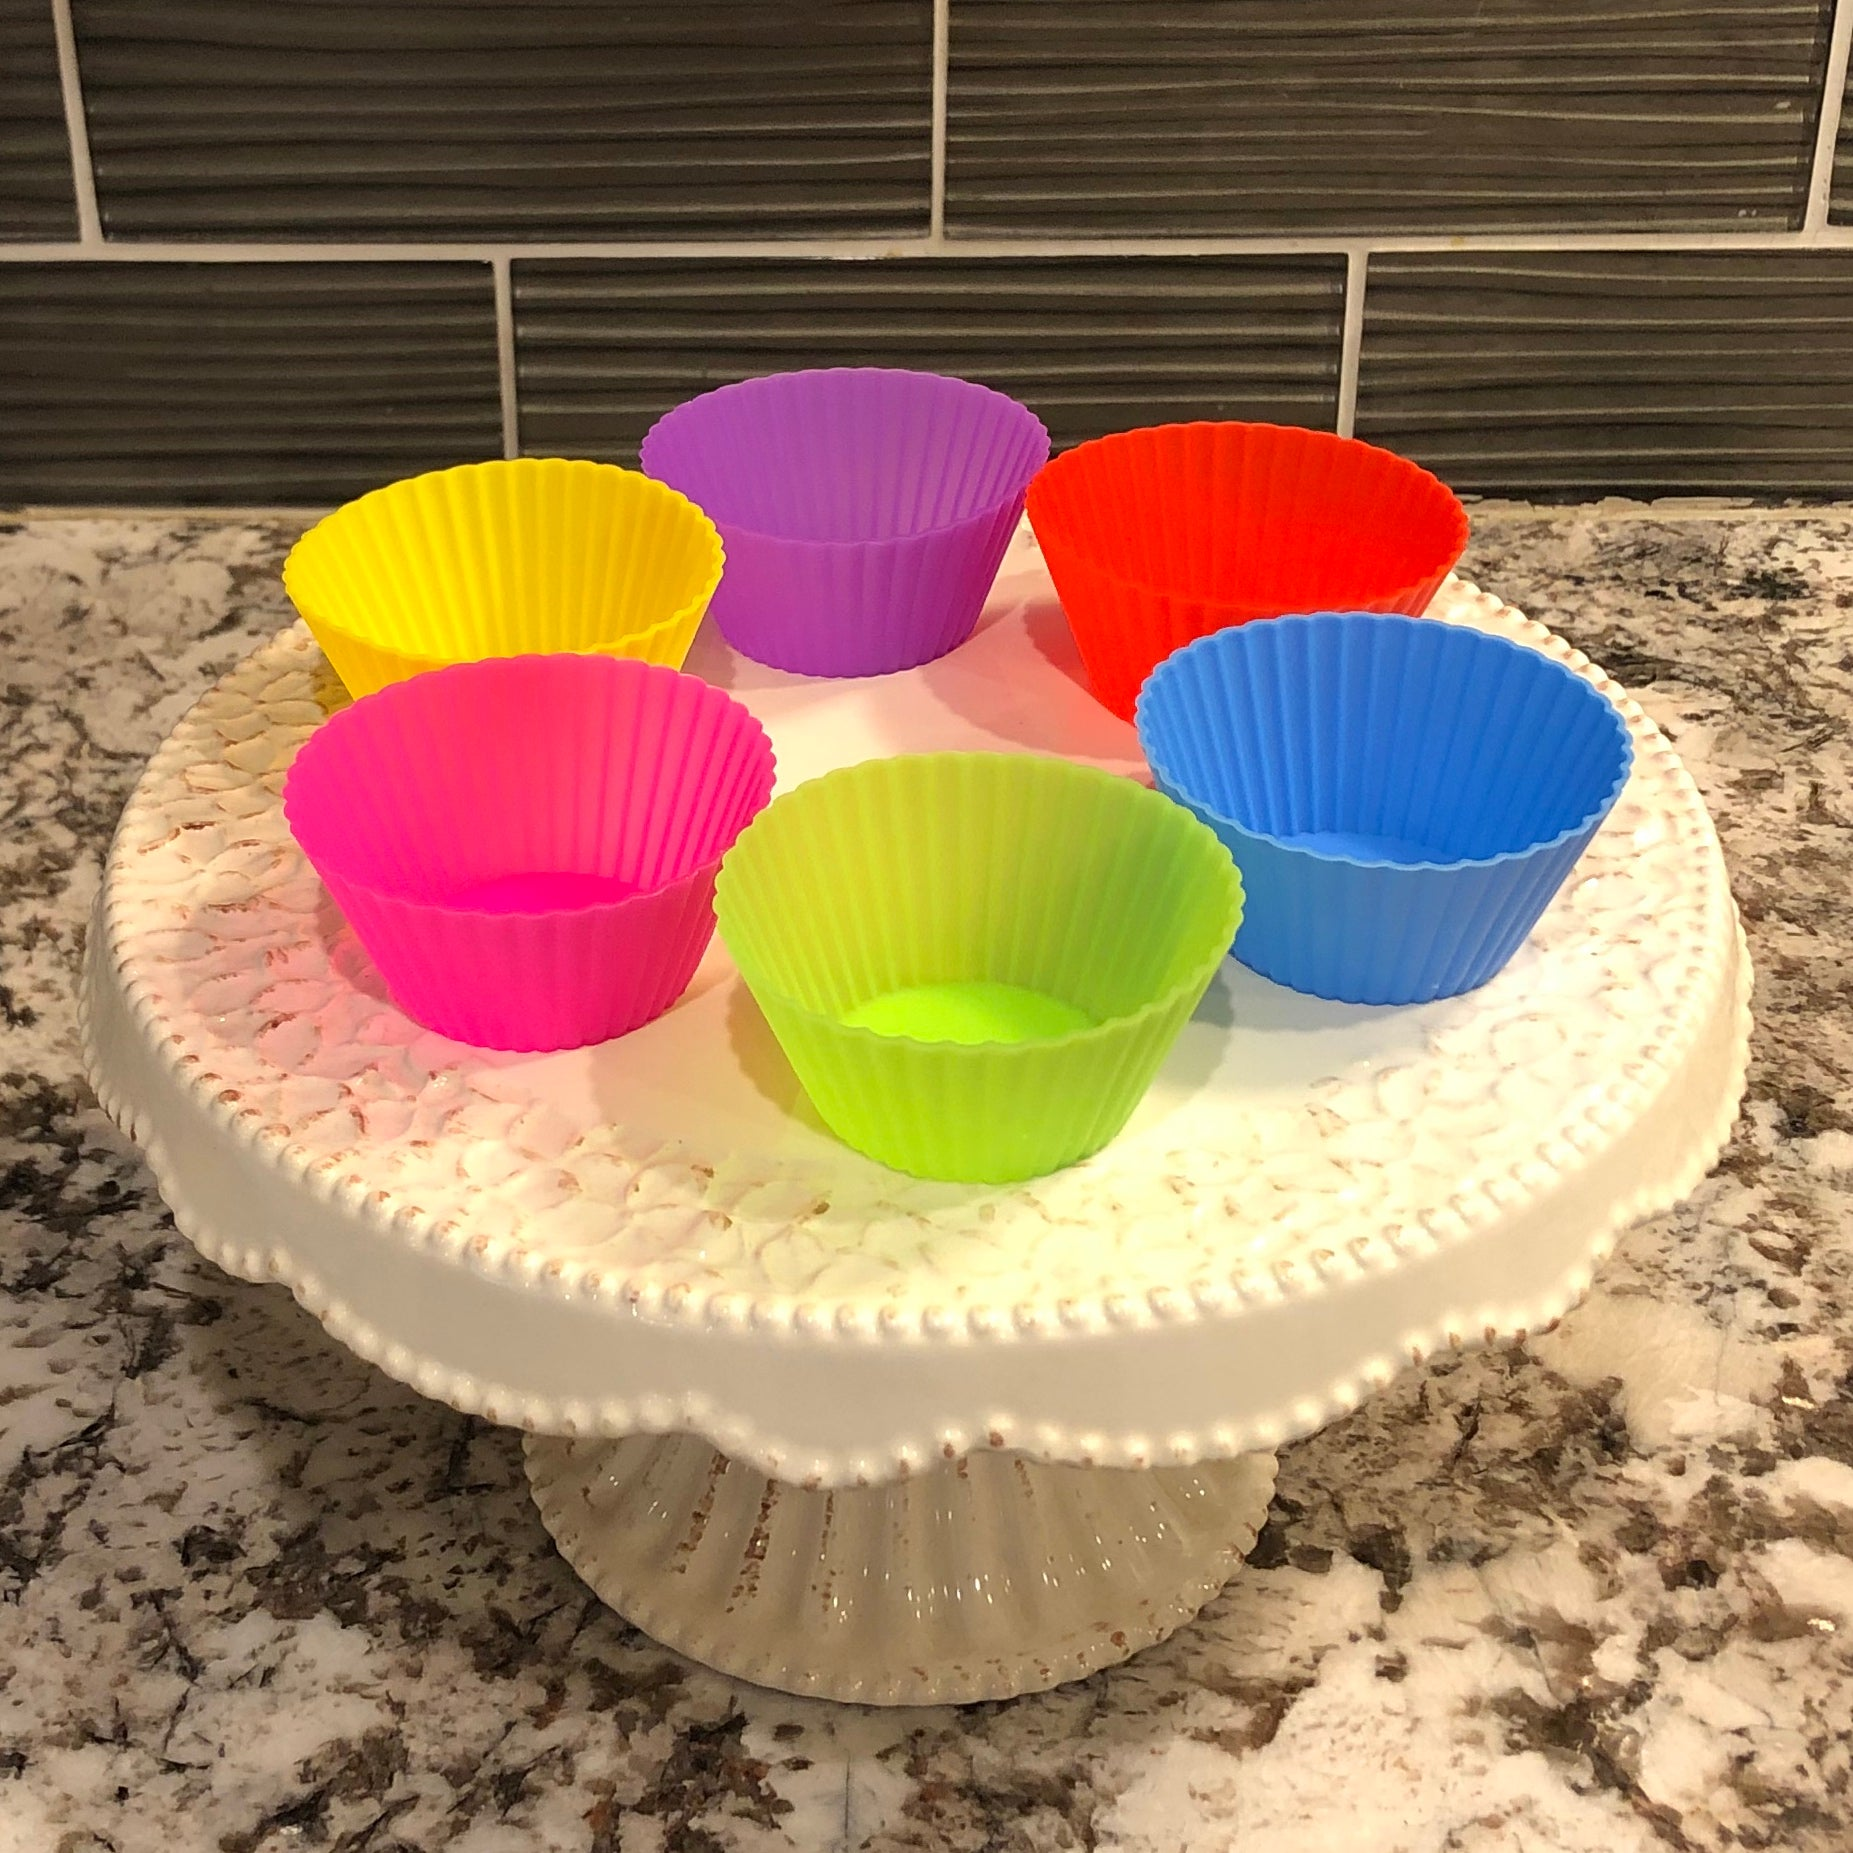 12 Reusable Silicone Baking Cups - Threaded Pear